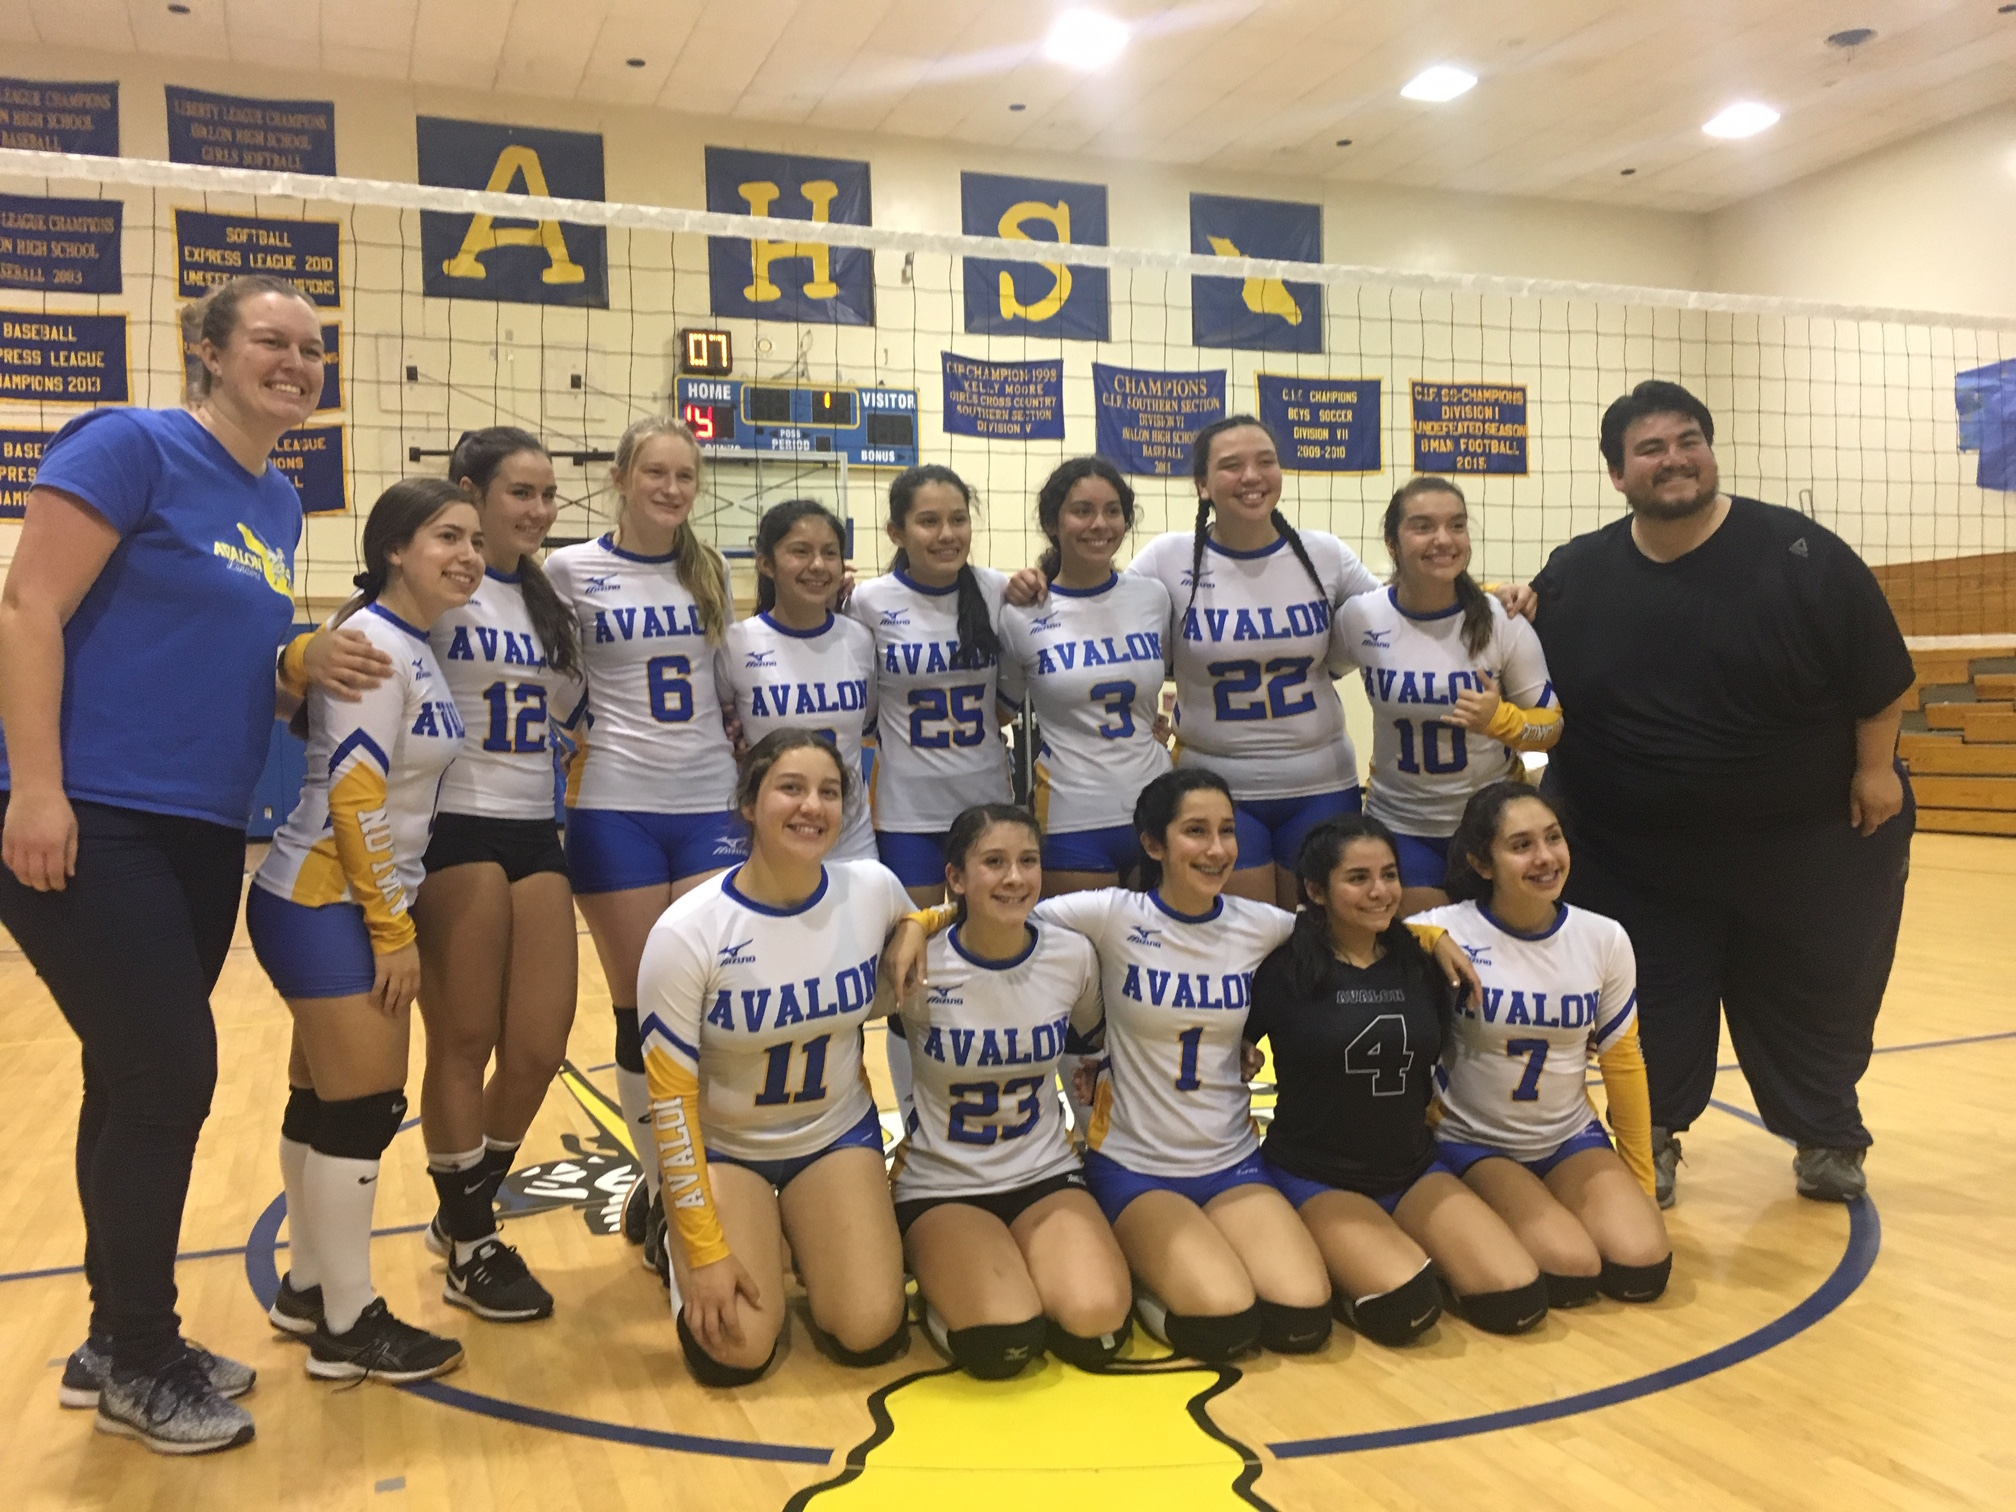 Avalon reaches CIF volleyball Finals - The Catalina Inslader